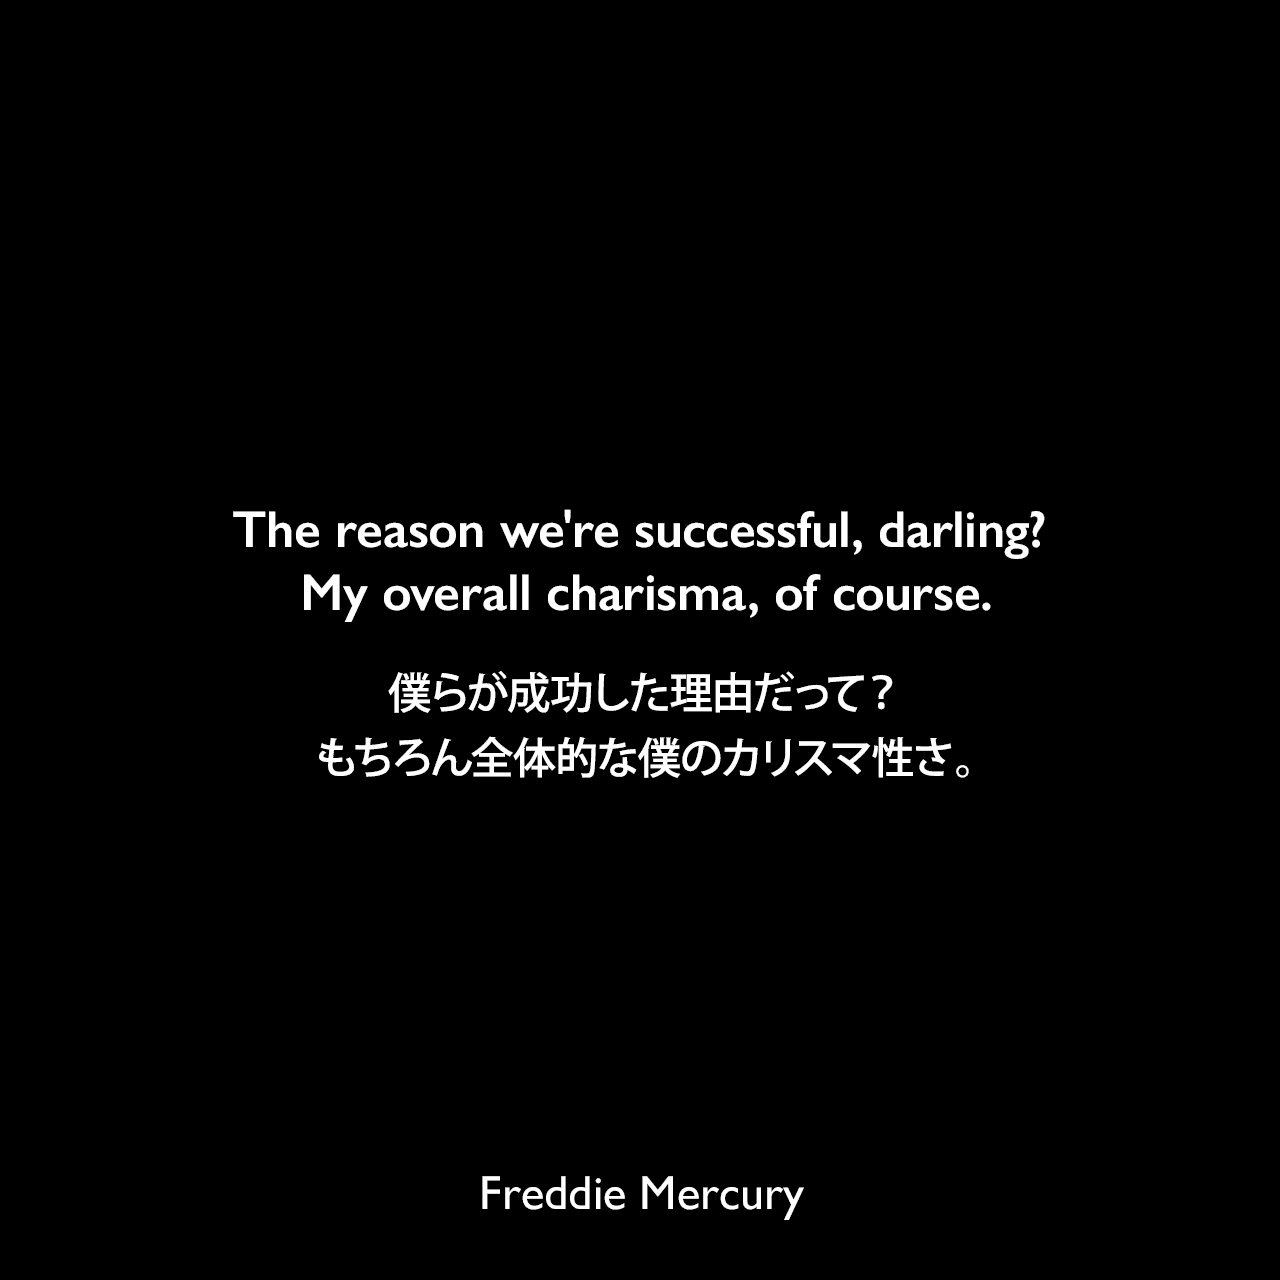 The reason we're successful, darling? My overall charisma, of course.僕らが成功した理由だって?もちろん全体的な僕のカリスマ性さ。Freddie Mercury